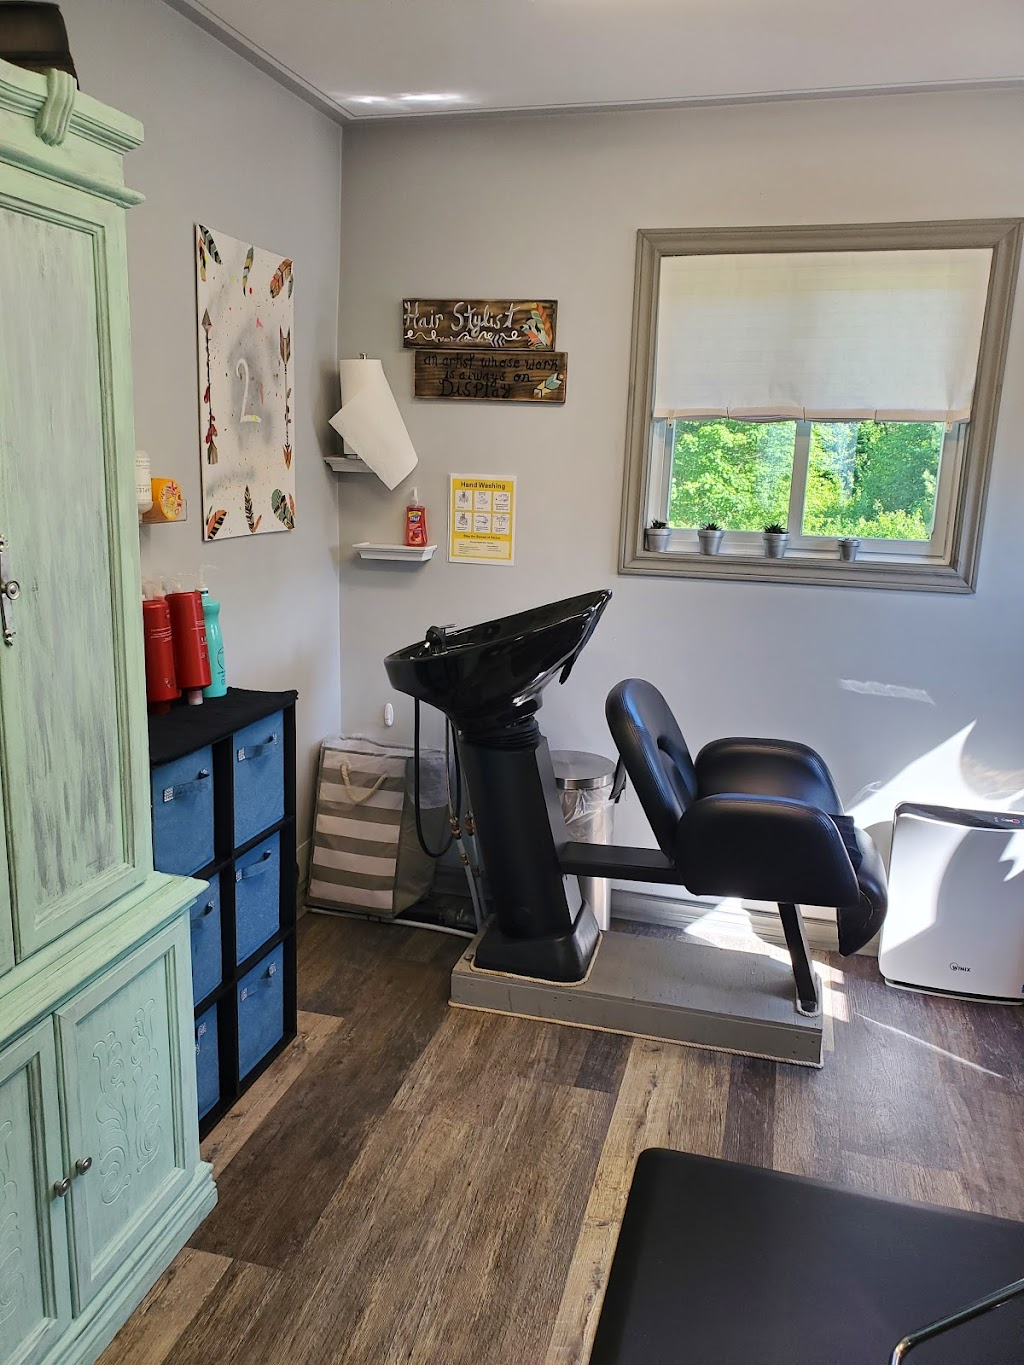 Limitless Hair Studio | hair care | 1714 Hwy 518 West, Sprucedale, ON P0A 1Y0, Canada | 7057836168 OR +1 705-783-6168